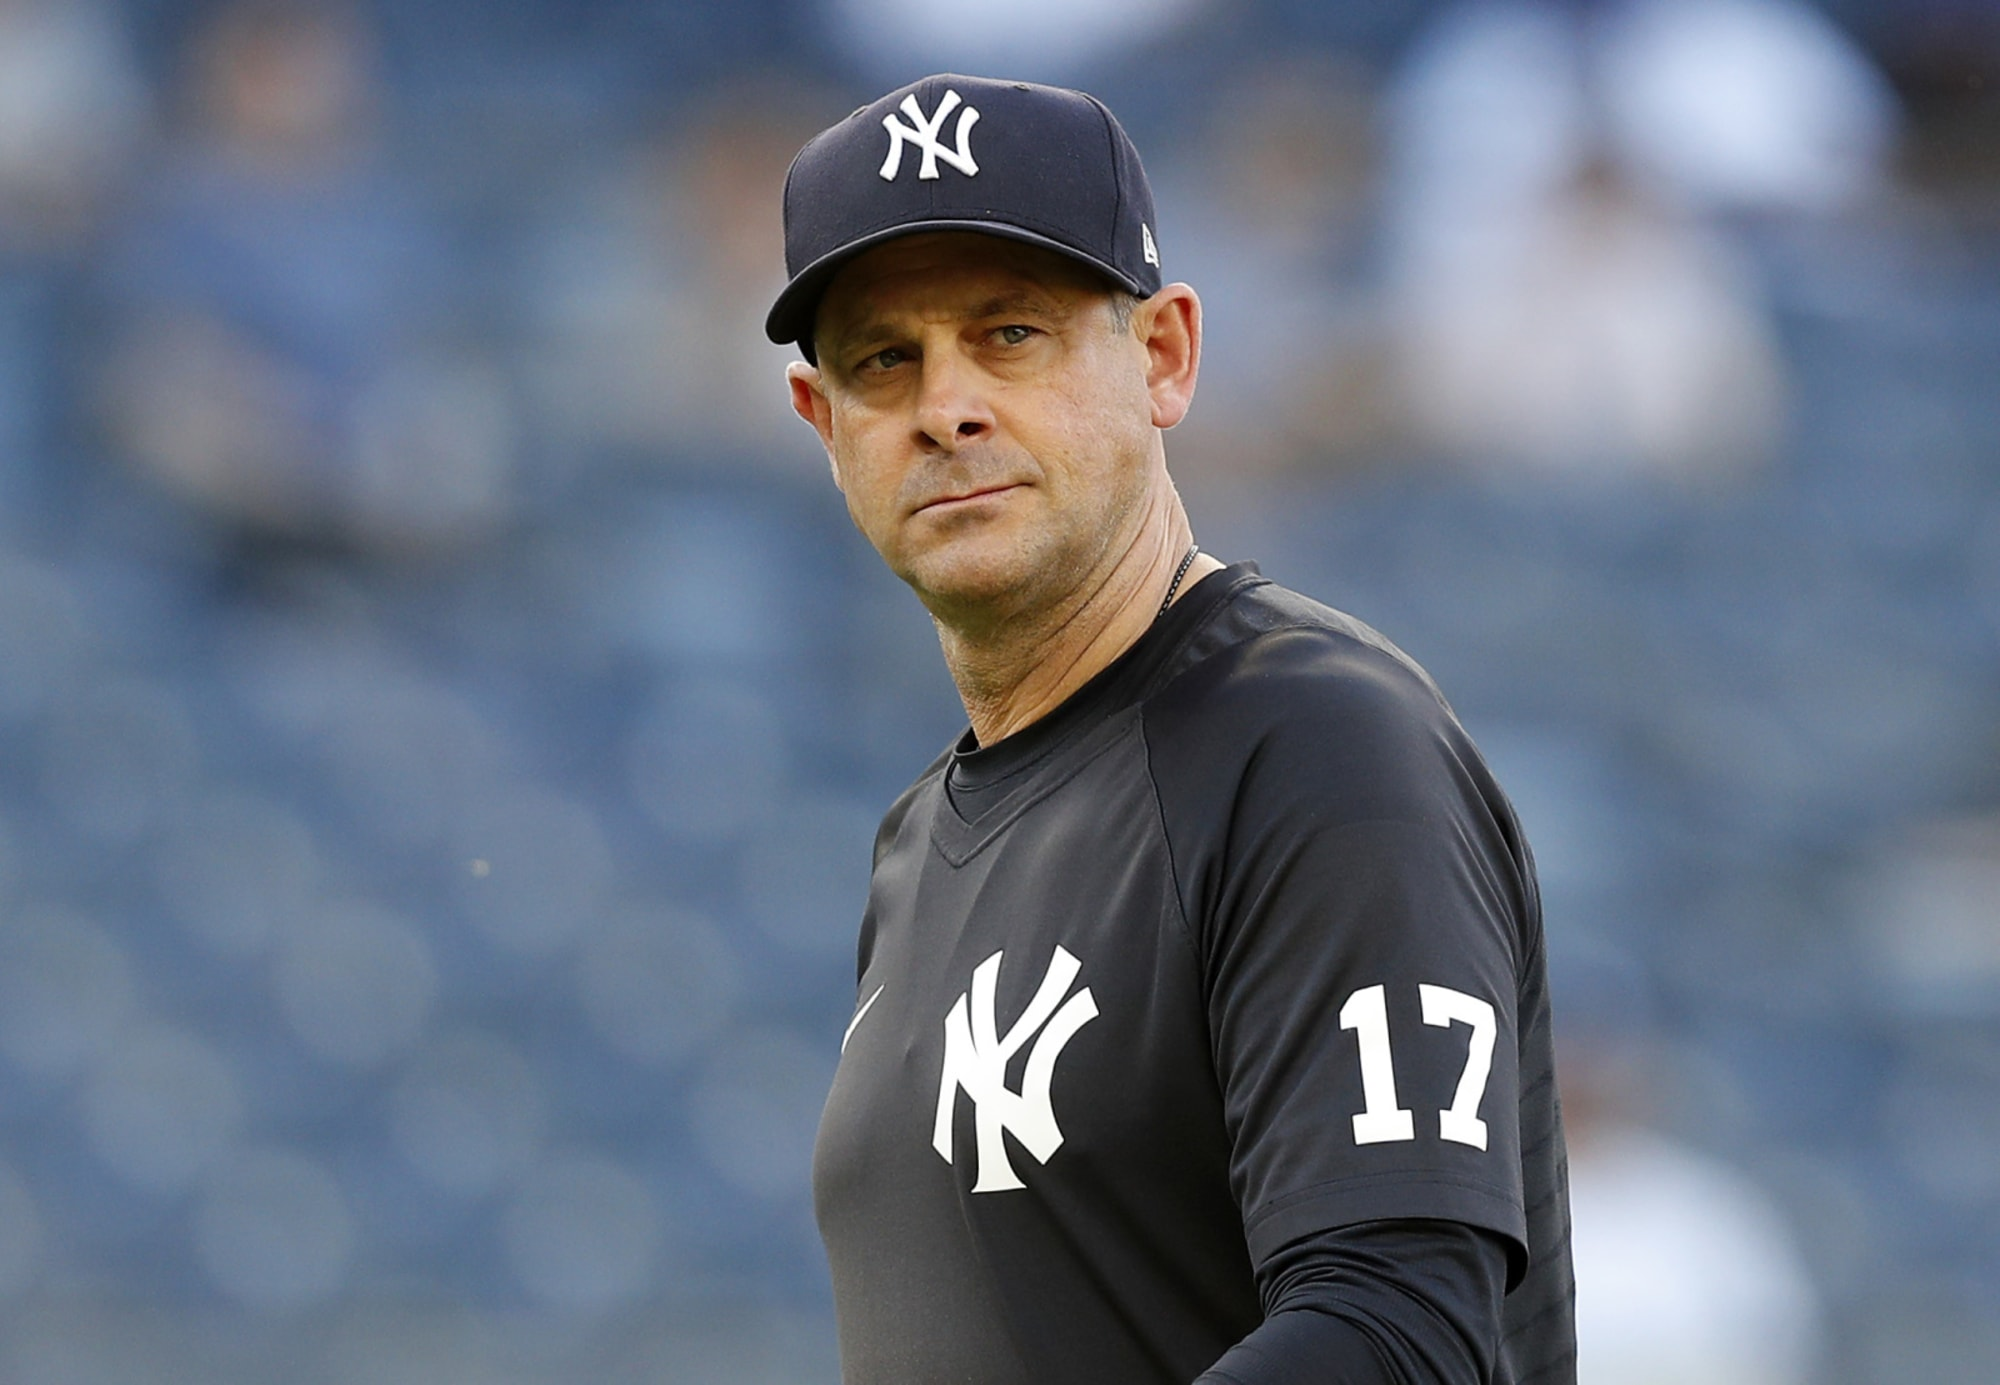 3 replacements the Yankees could hire if they fire Aaron Boone